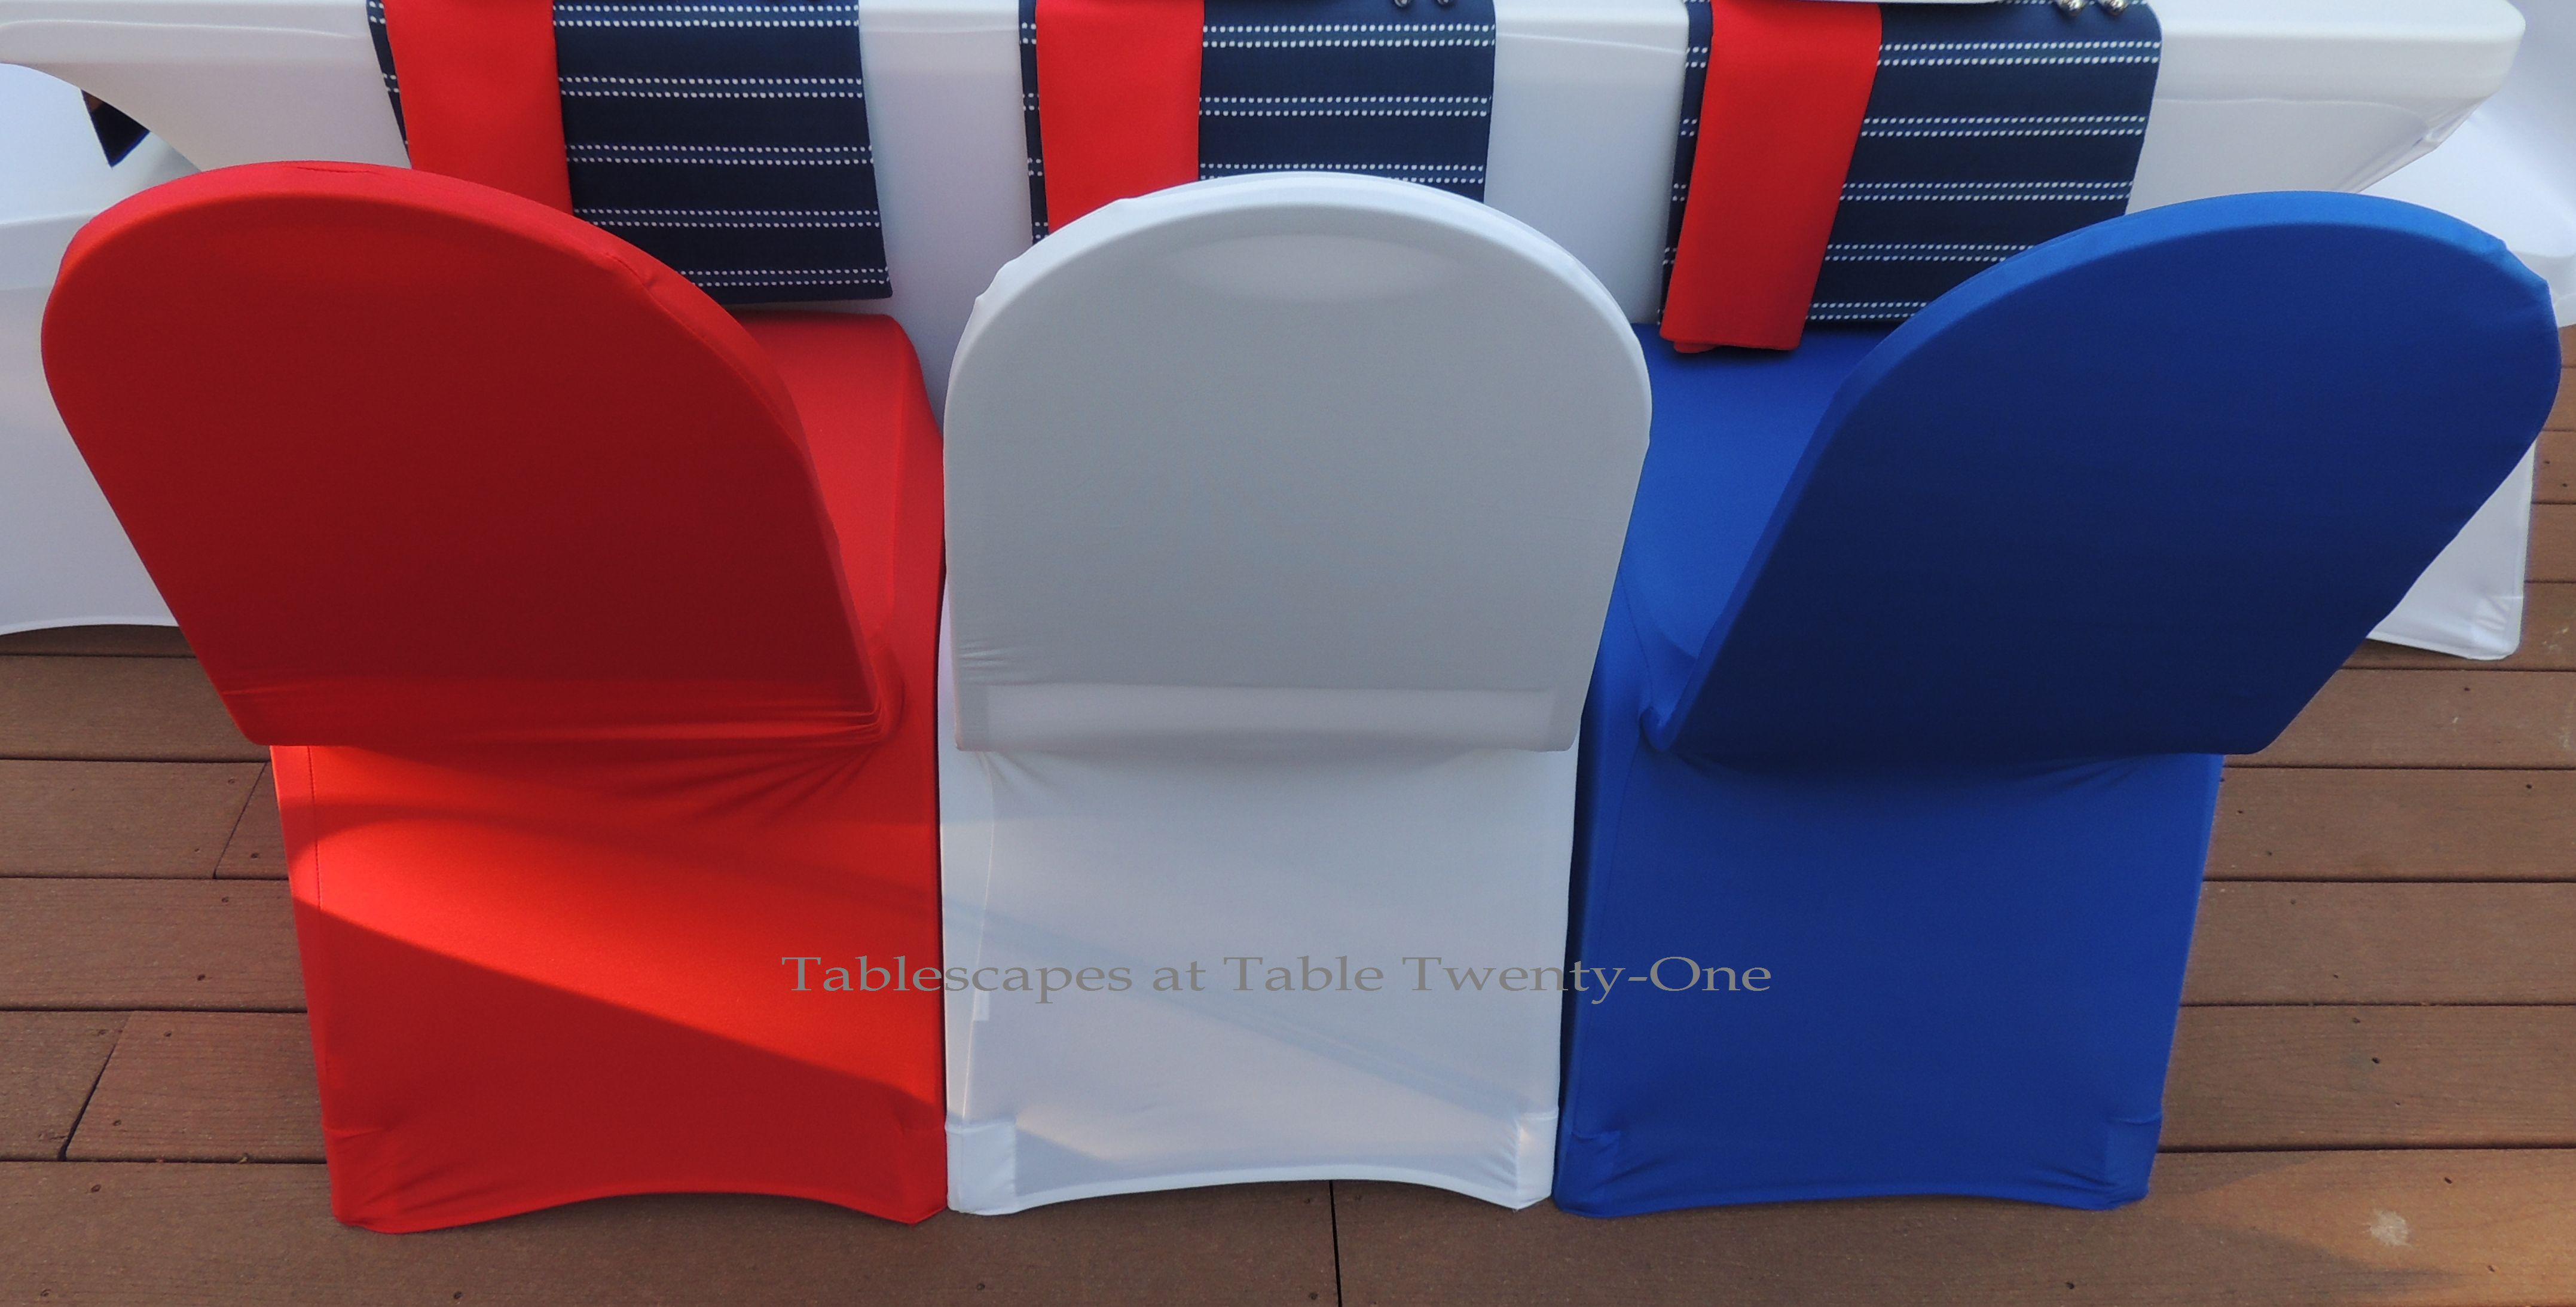 Tablescapes at Table Twenty-One, www.tabletwentyone.wordpress.com, 4th of July Coastal Style: red, white & blue stretch chair covers from LinenTablecloth.com